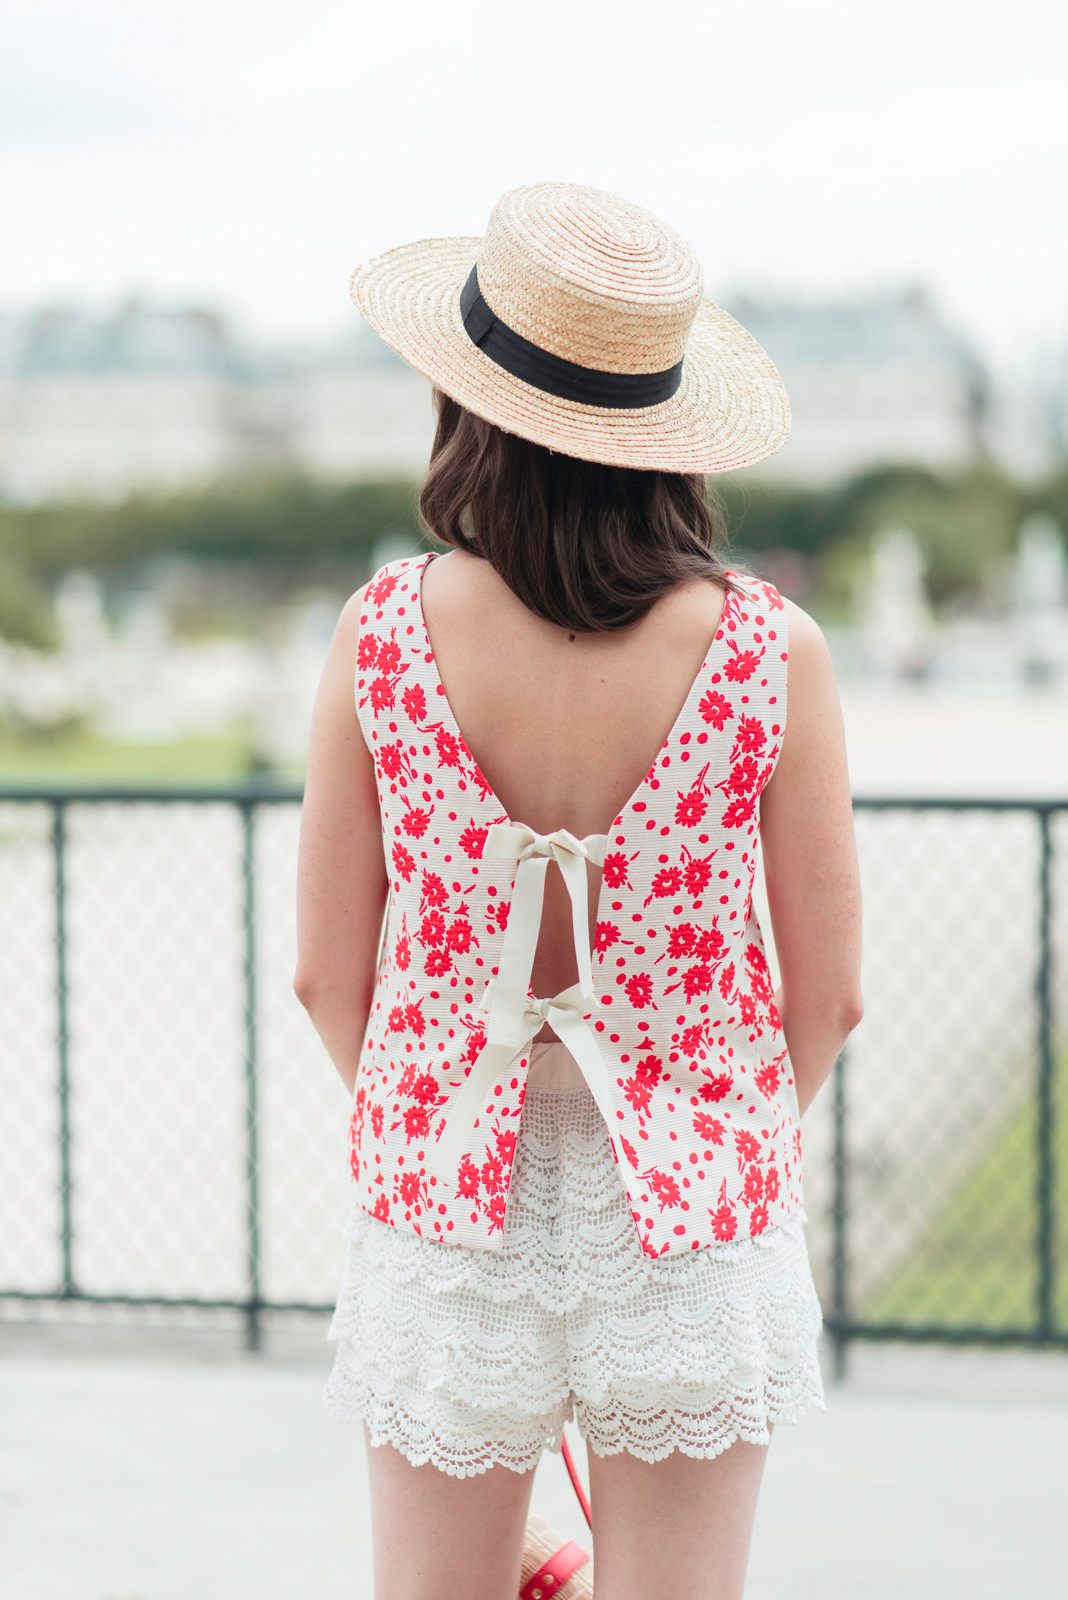 Blog-Mode-And-The-City-Looks-Ete-Aux-Tuileries-4